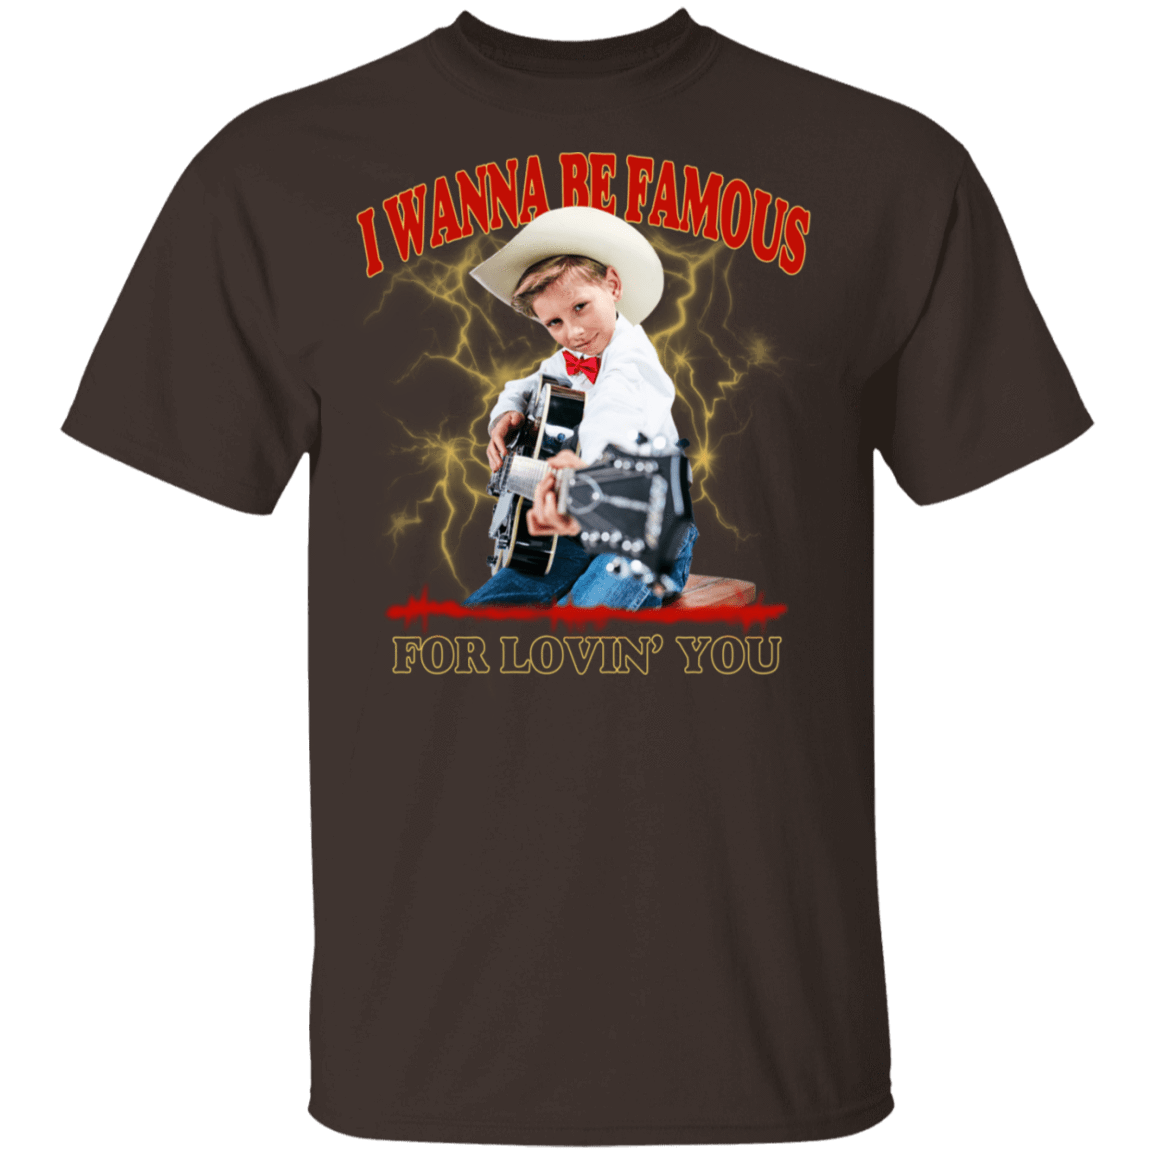 I Wanna Be Famous For Lovin You Mason Ramsey T-Shirts, Hoodies 22-2283-80162968-12087 - Tee Ript